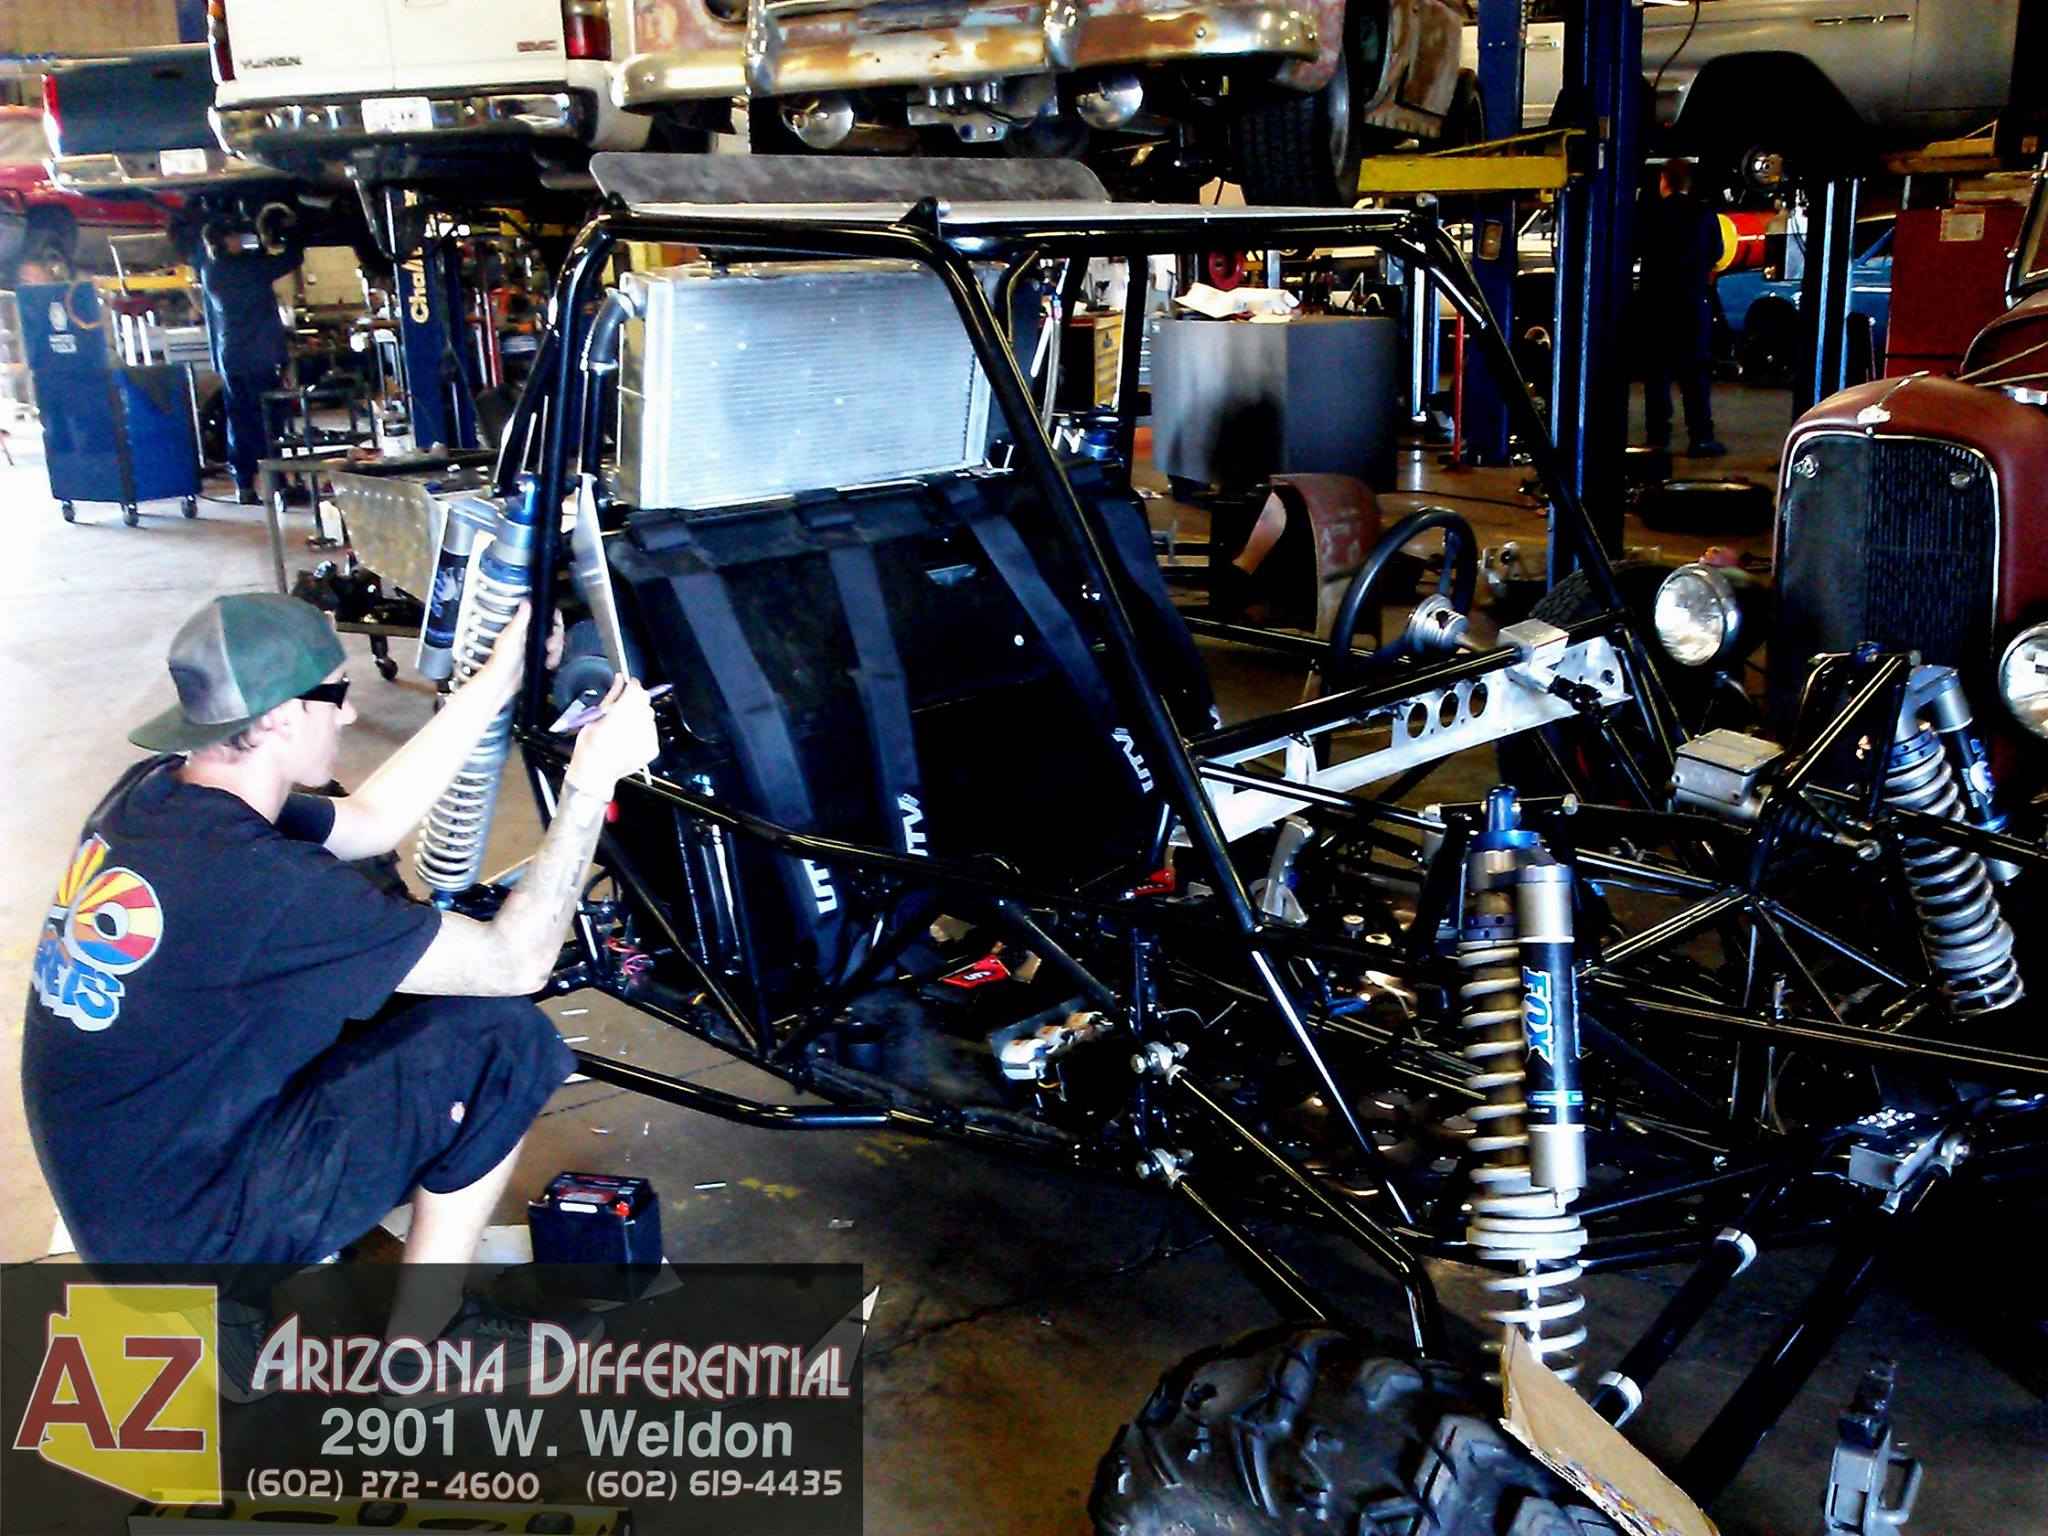 Arizona Differential Fabrication 2